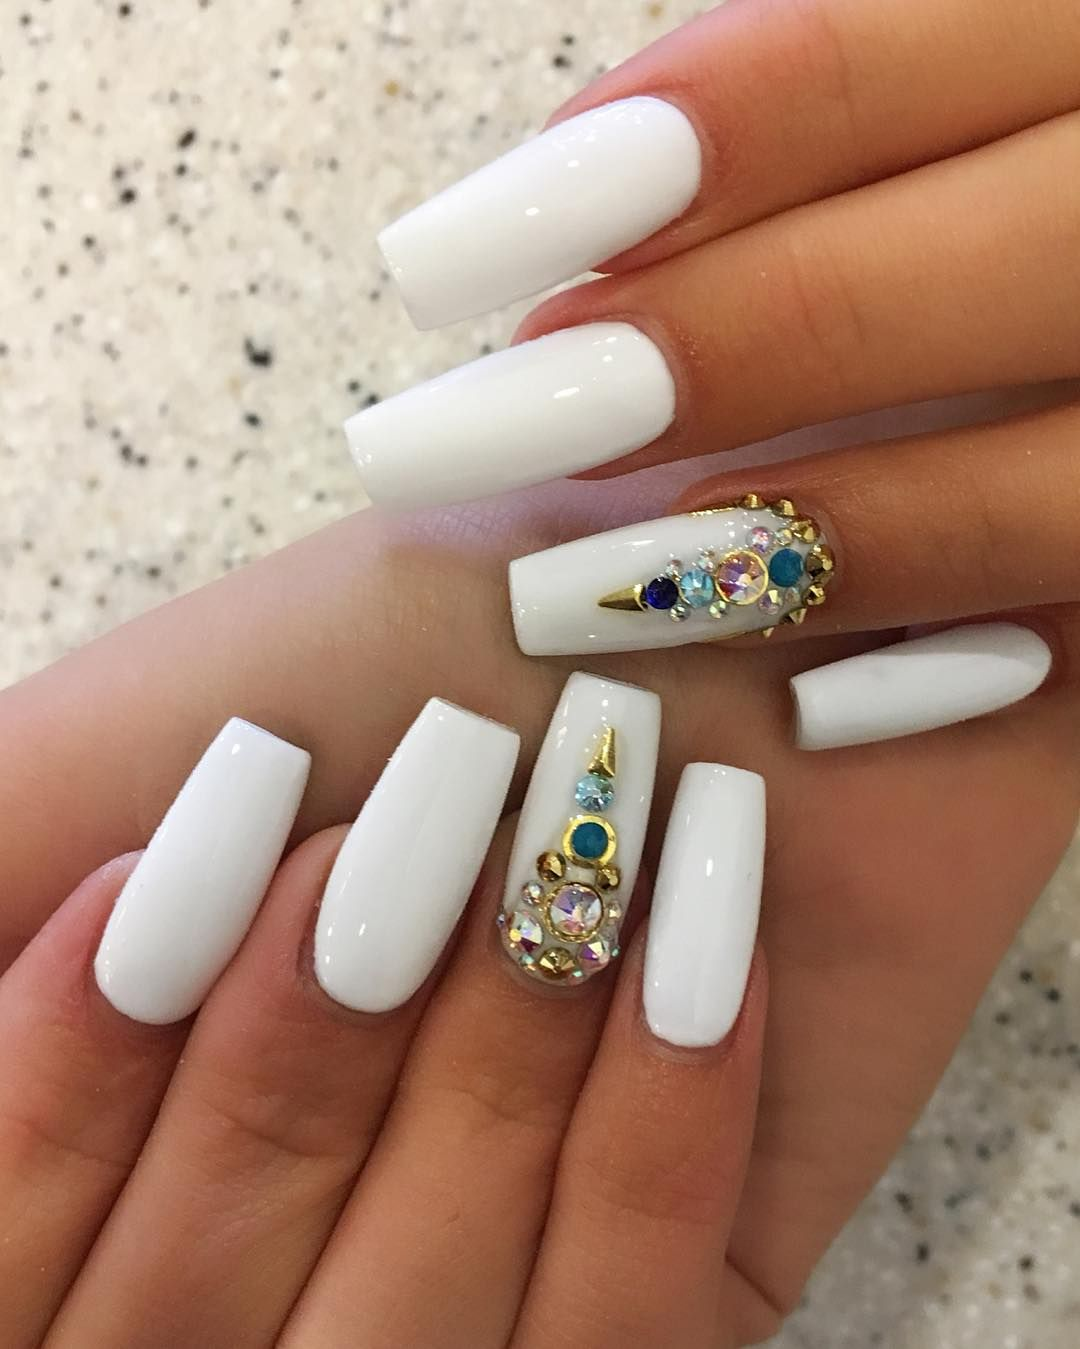 120 Best Coffin Nails Ideas That Suit Everyone Short Coffin Nails Designs Nails Design With Rhinestones Rhinestone Nails